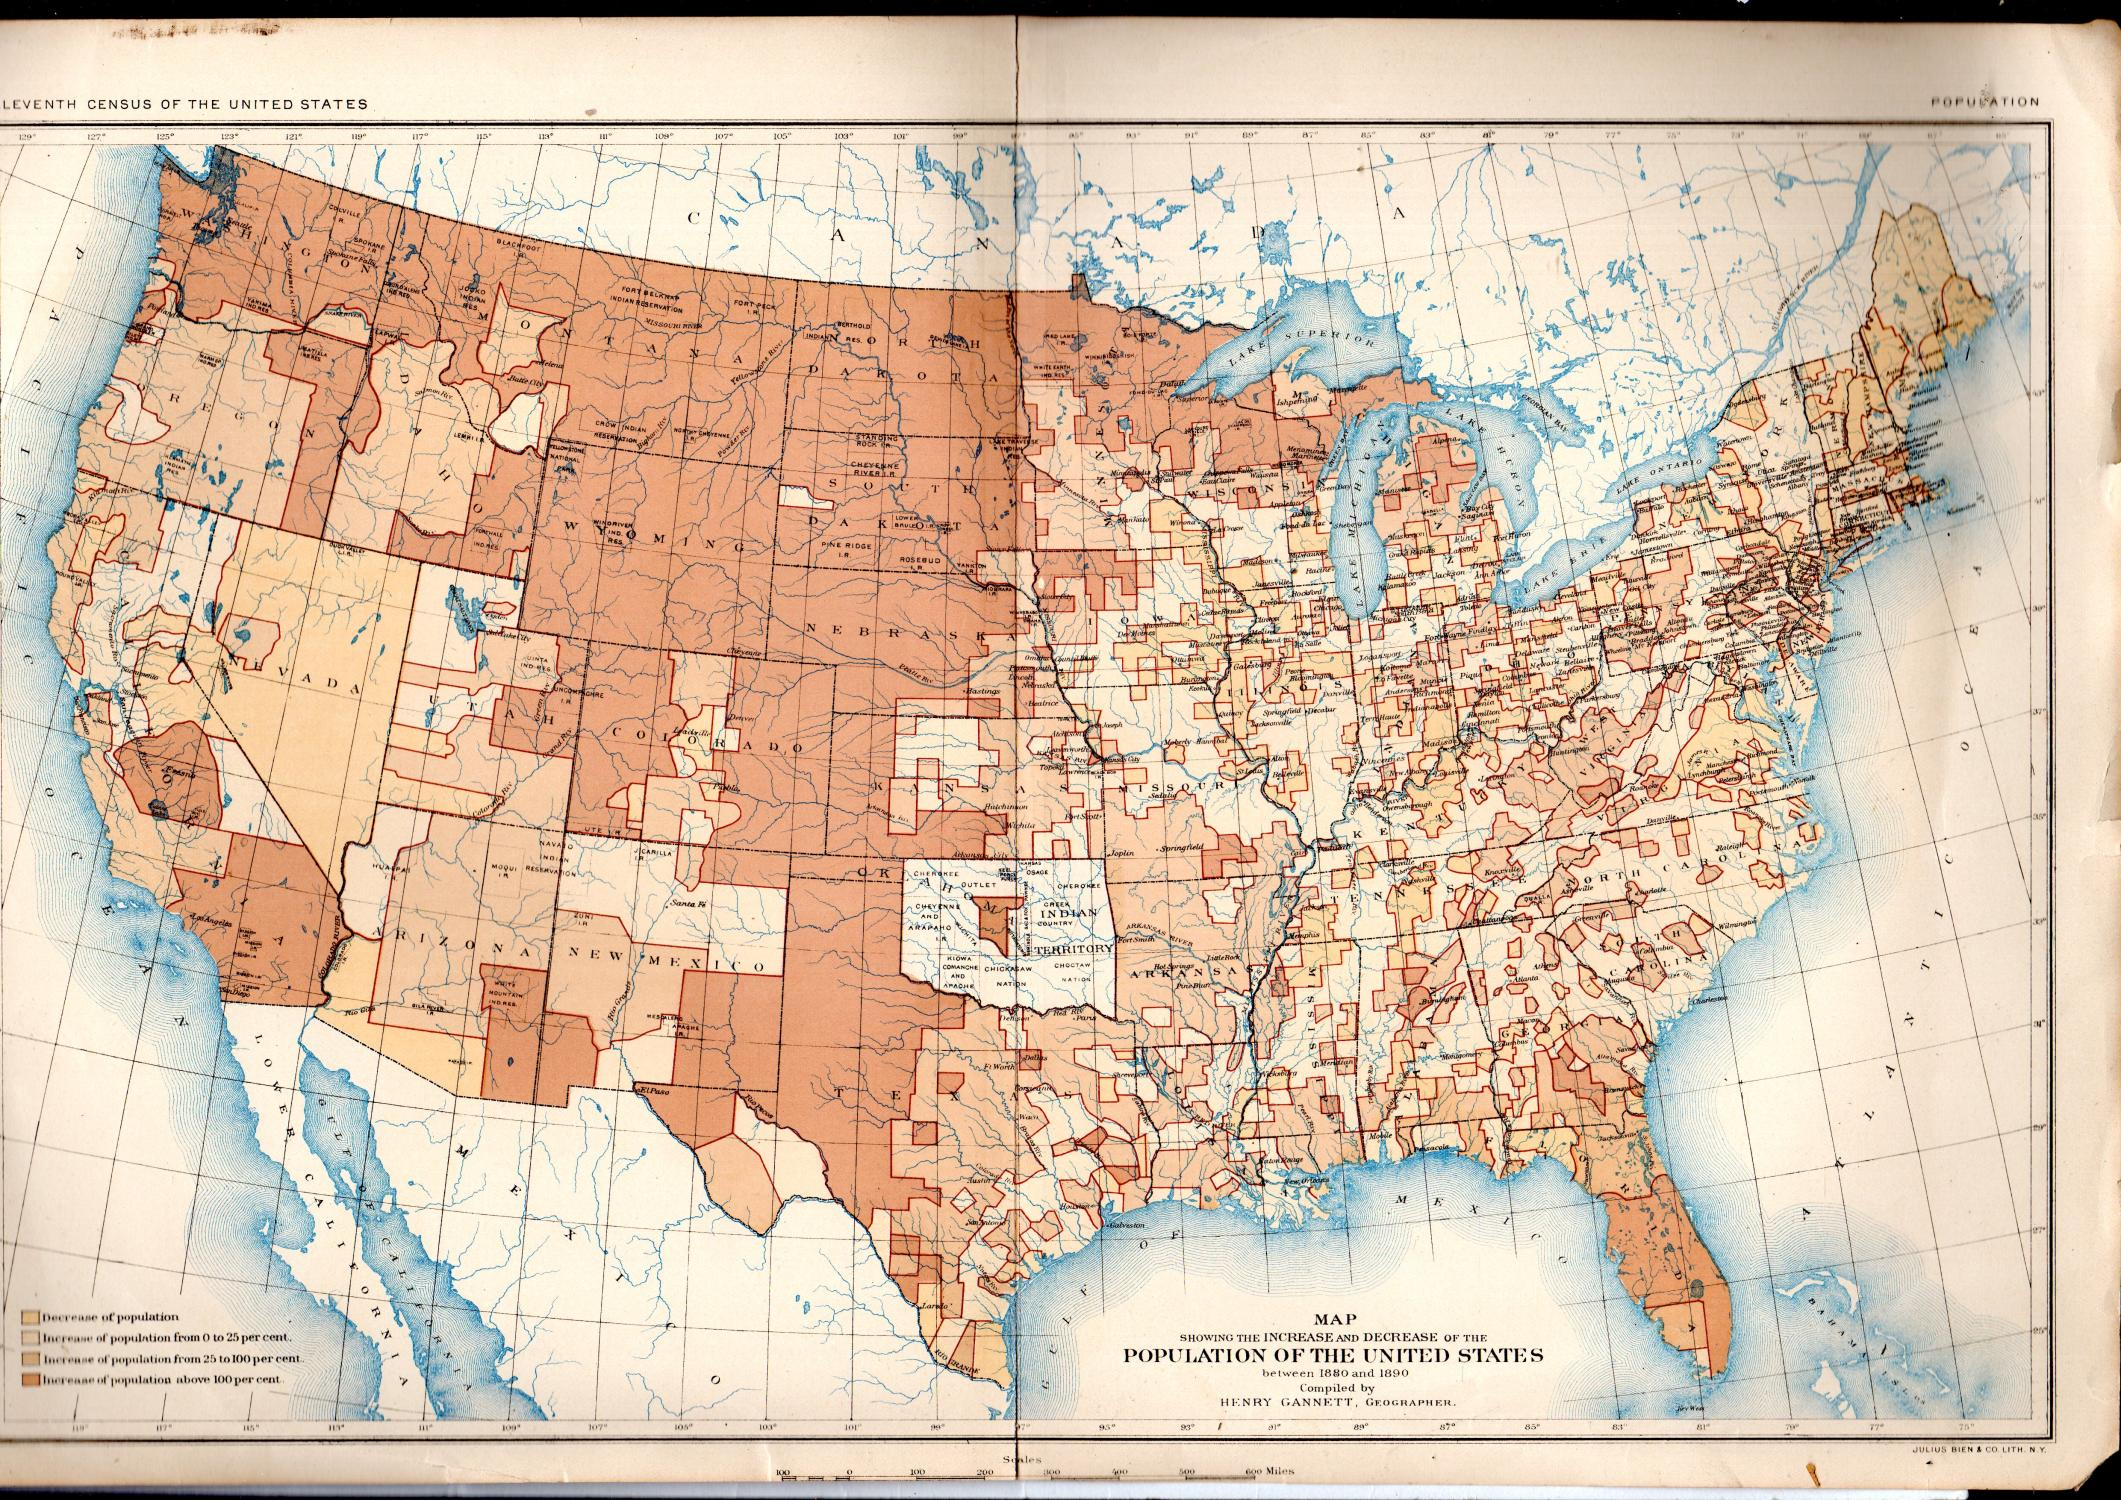 The Eleventh Census of the United States